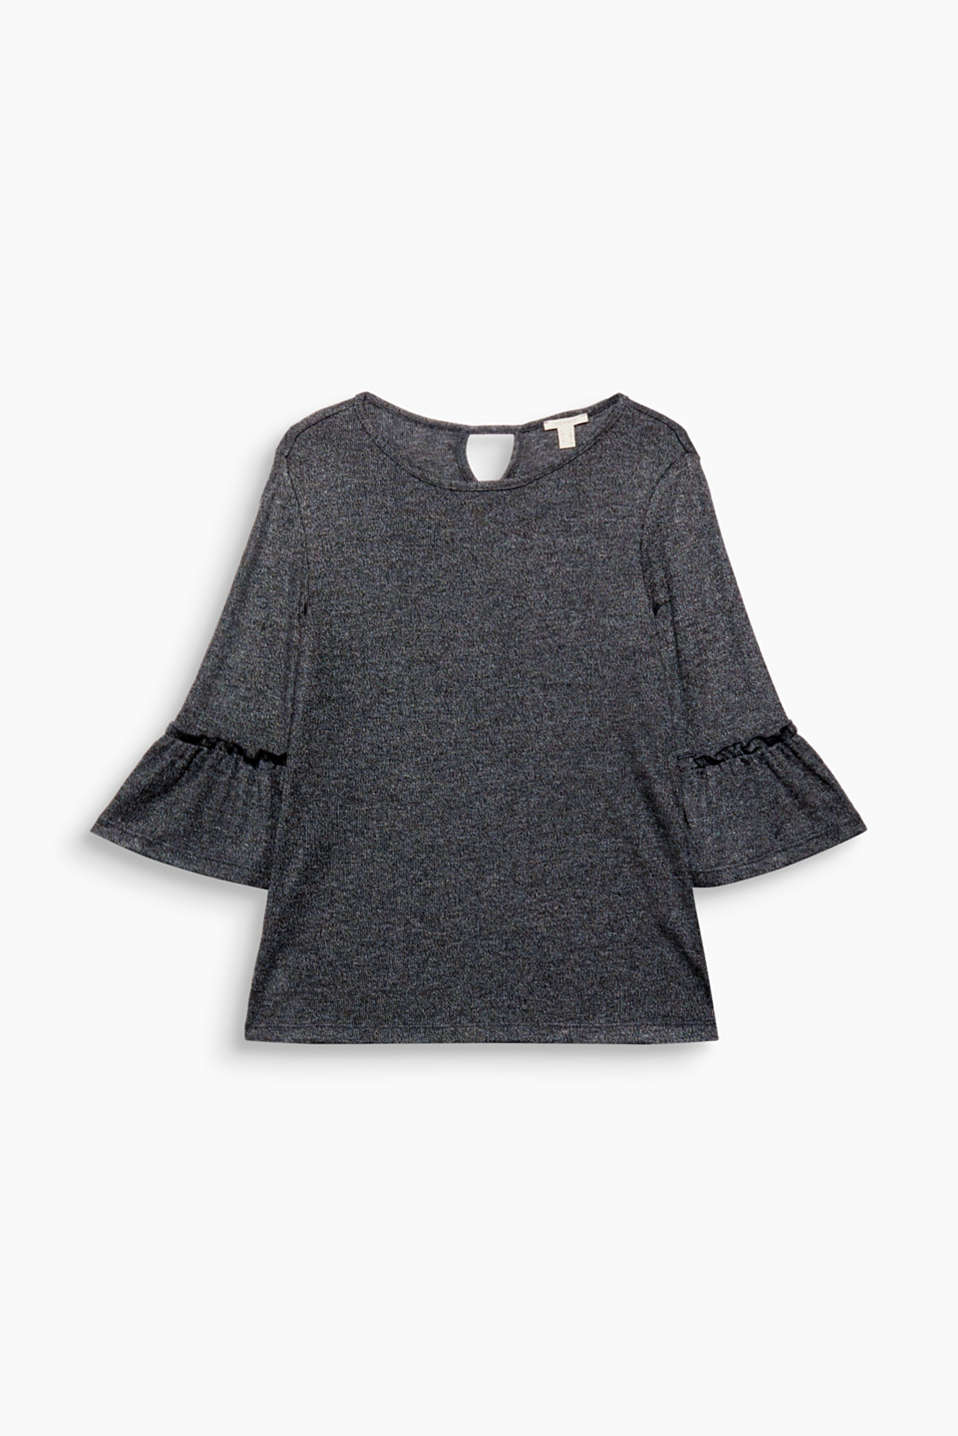 Thanks to its feminine frilled trim, this melange top with viscose is a particularly charming style